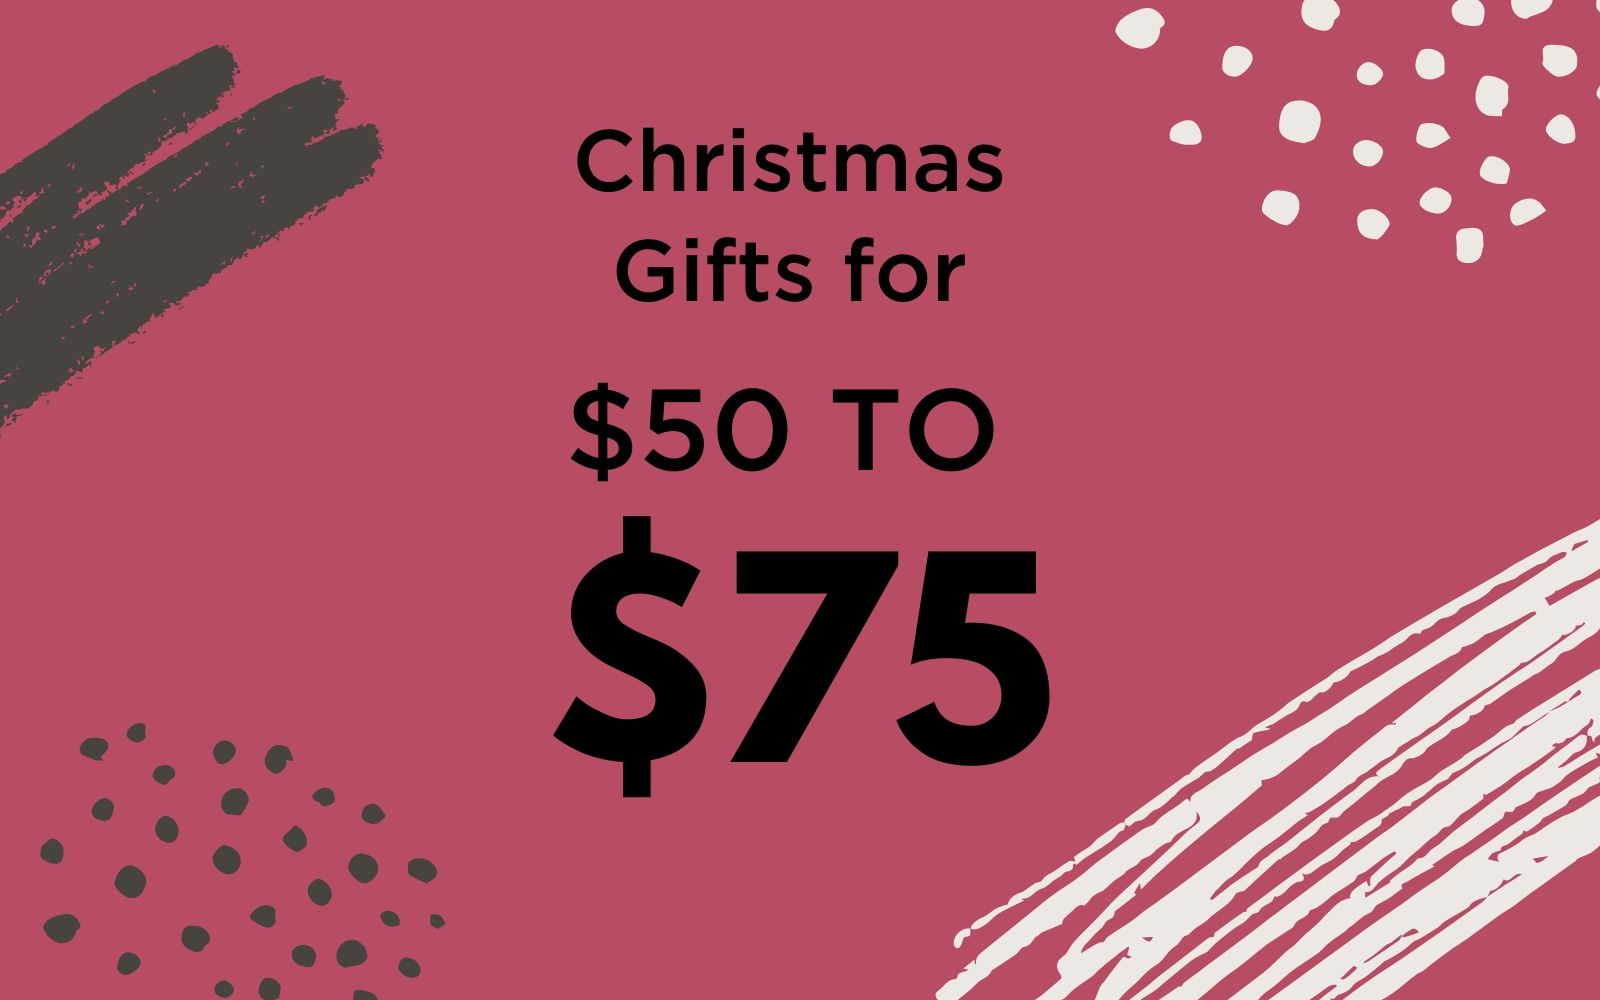 Christmas Gifts for Her | $75-$100 - Chuchka